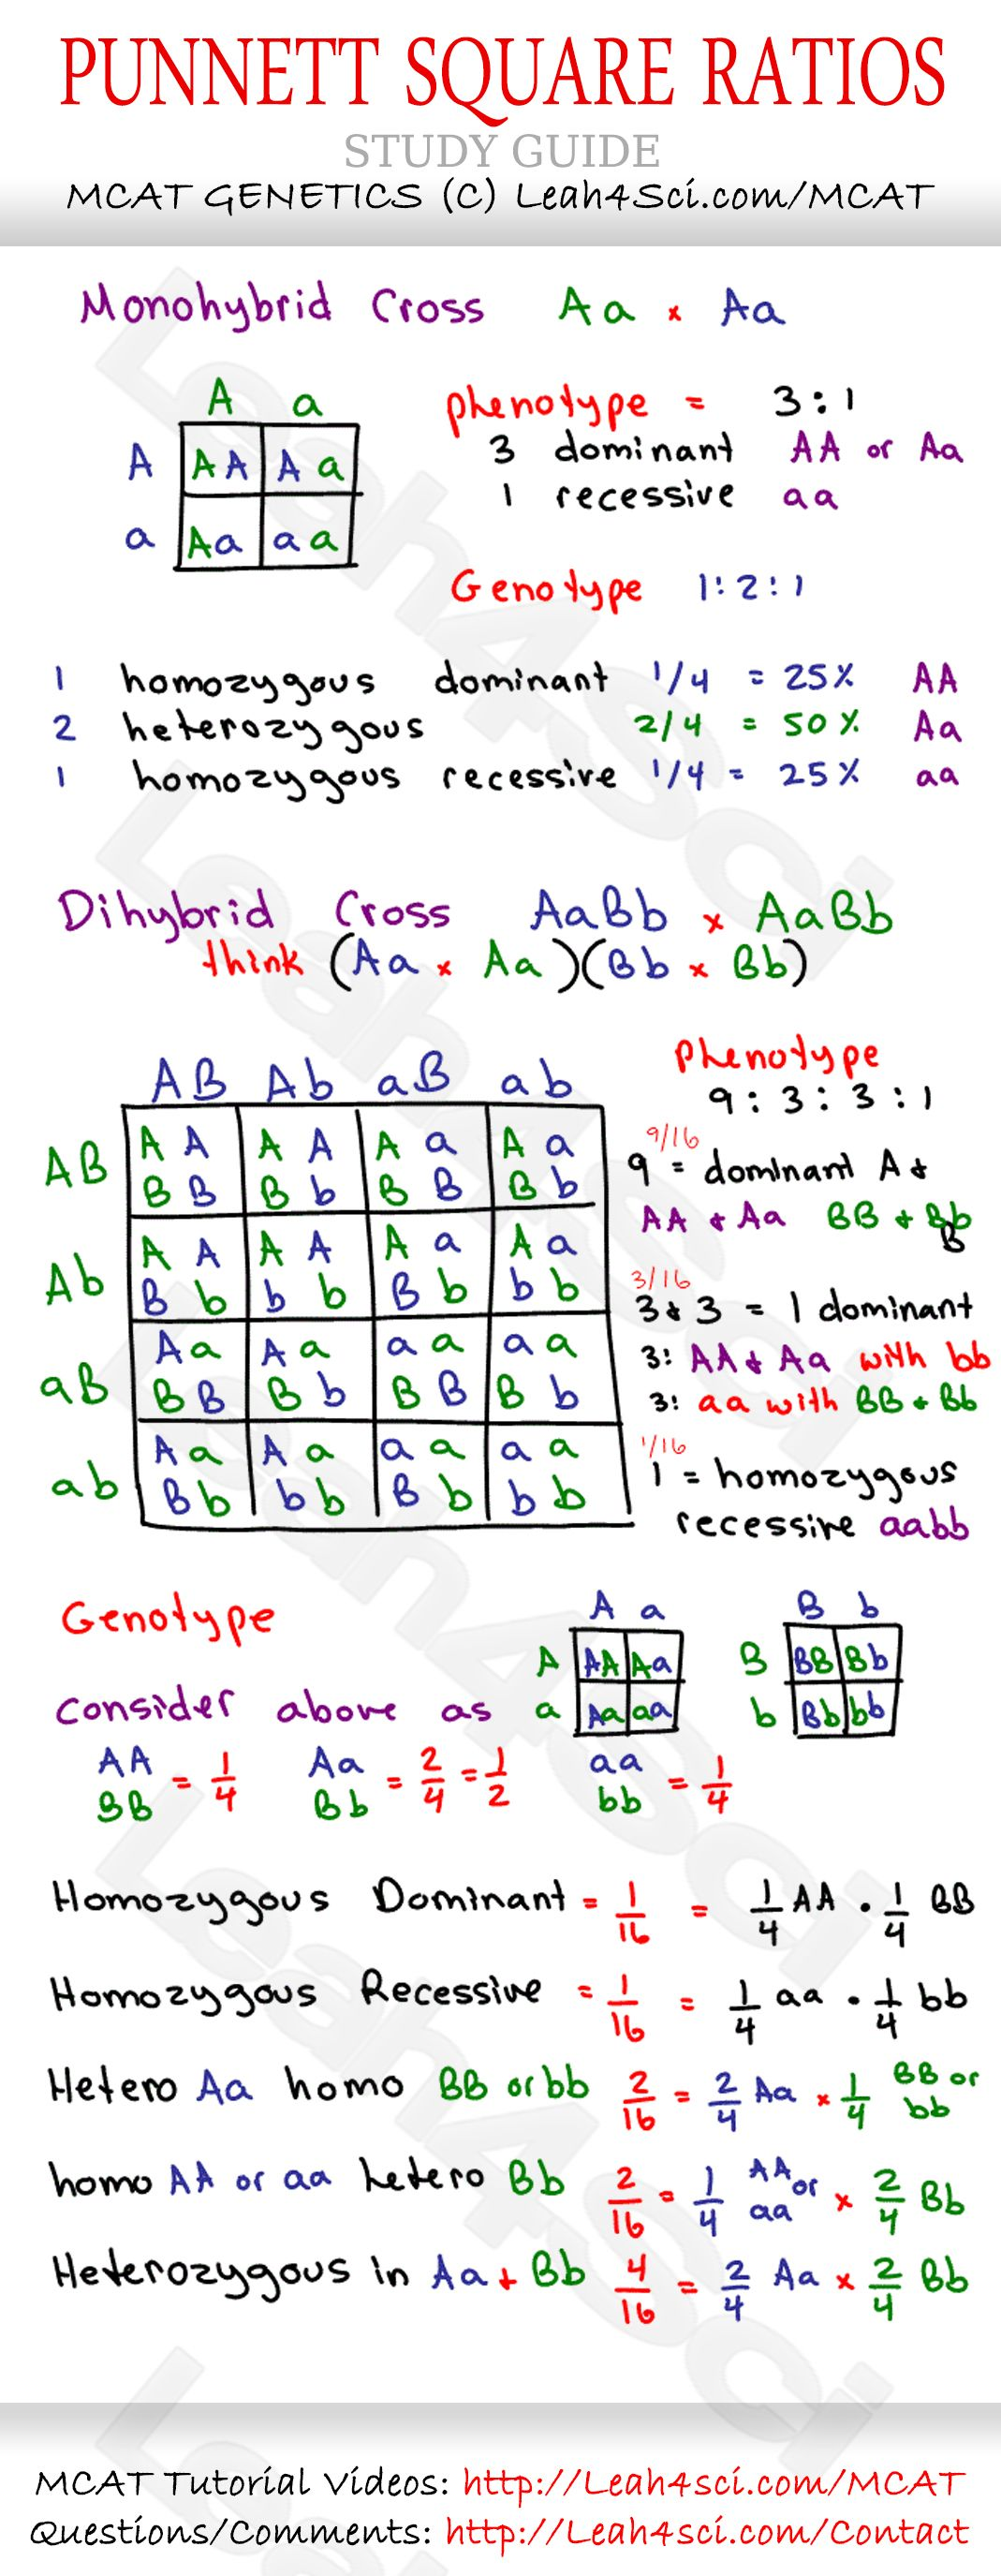 Punnet-Square-Ratios-MCAT-Genetics-Cheat-Sheet-Study-Guide.jpg ...